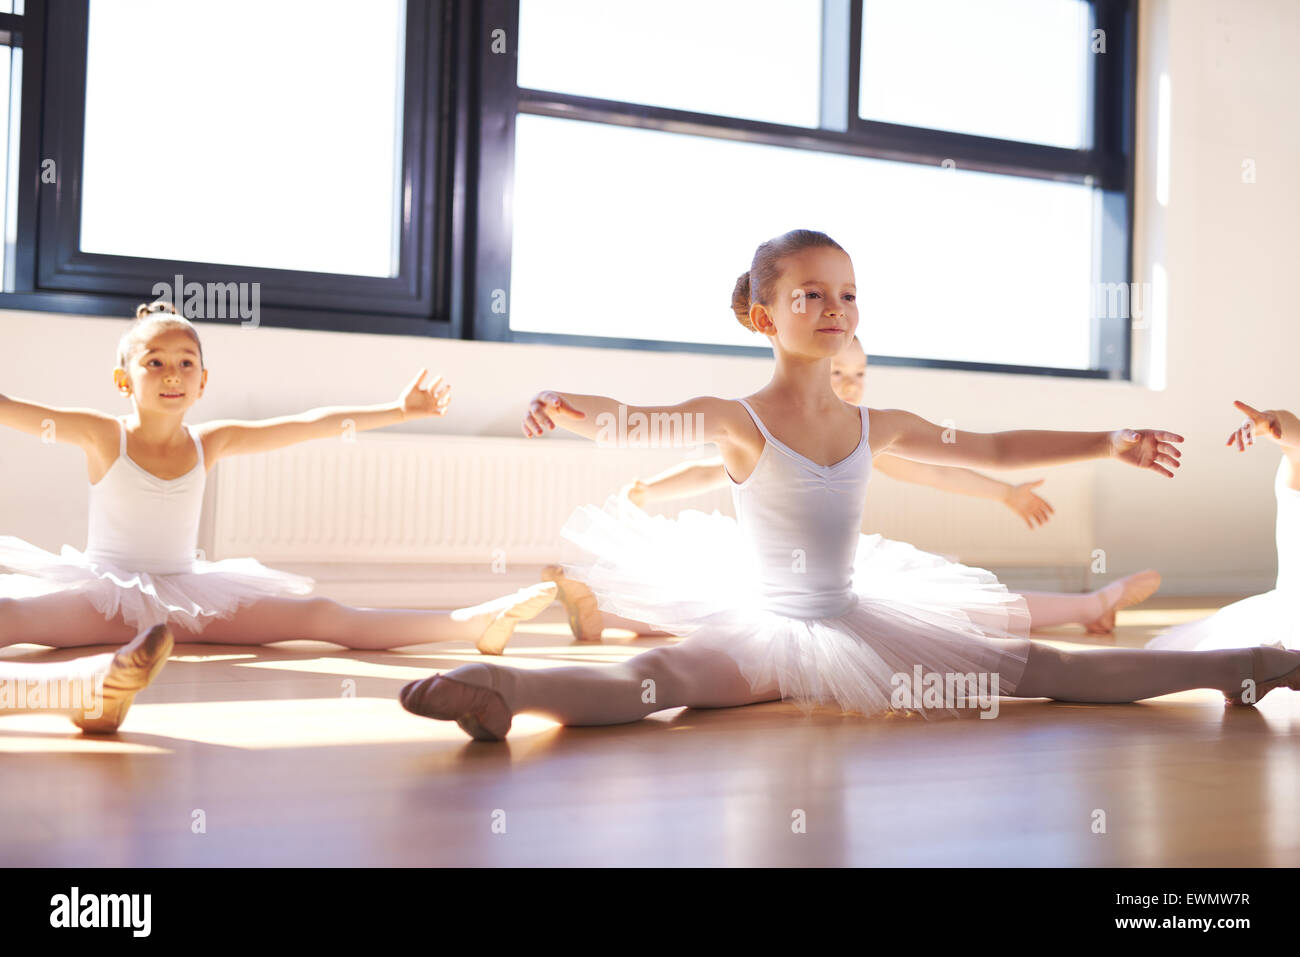 Pretty Young Ballerinas in White Tutus, Sitting on the Floor and Stretching Arms and Legs as Warm Exercise. - Stock Image